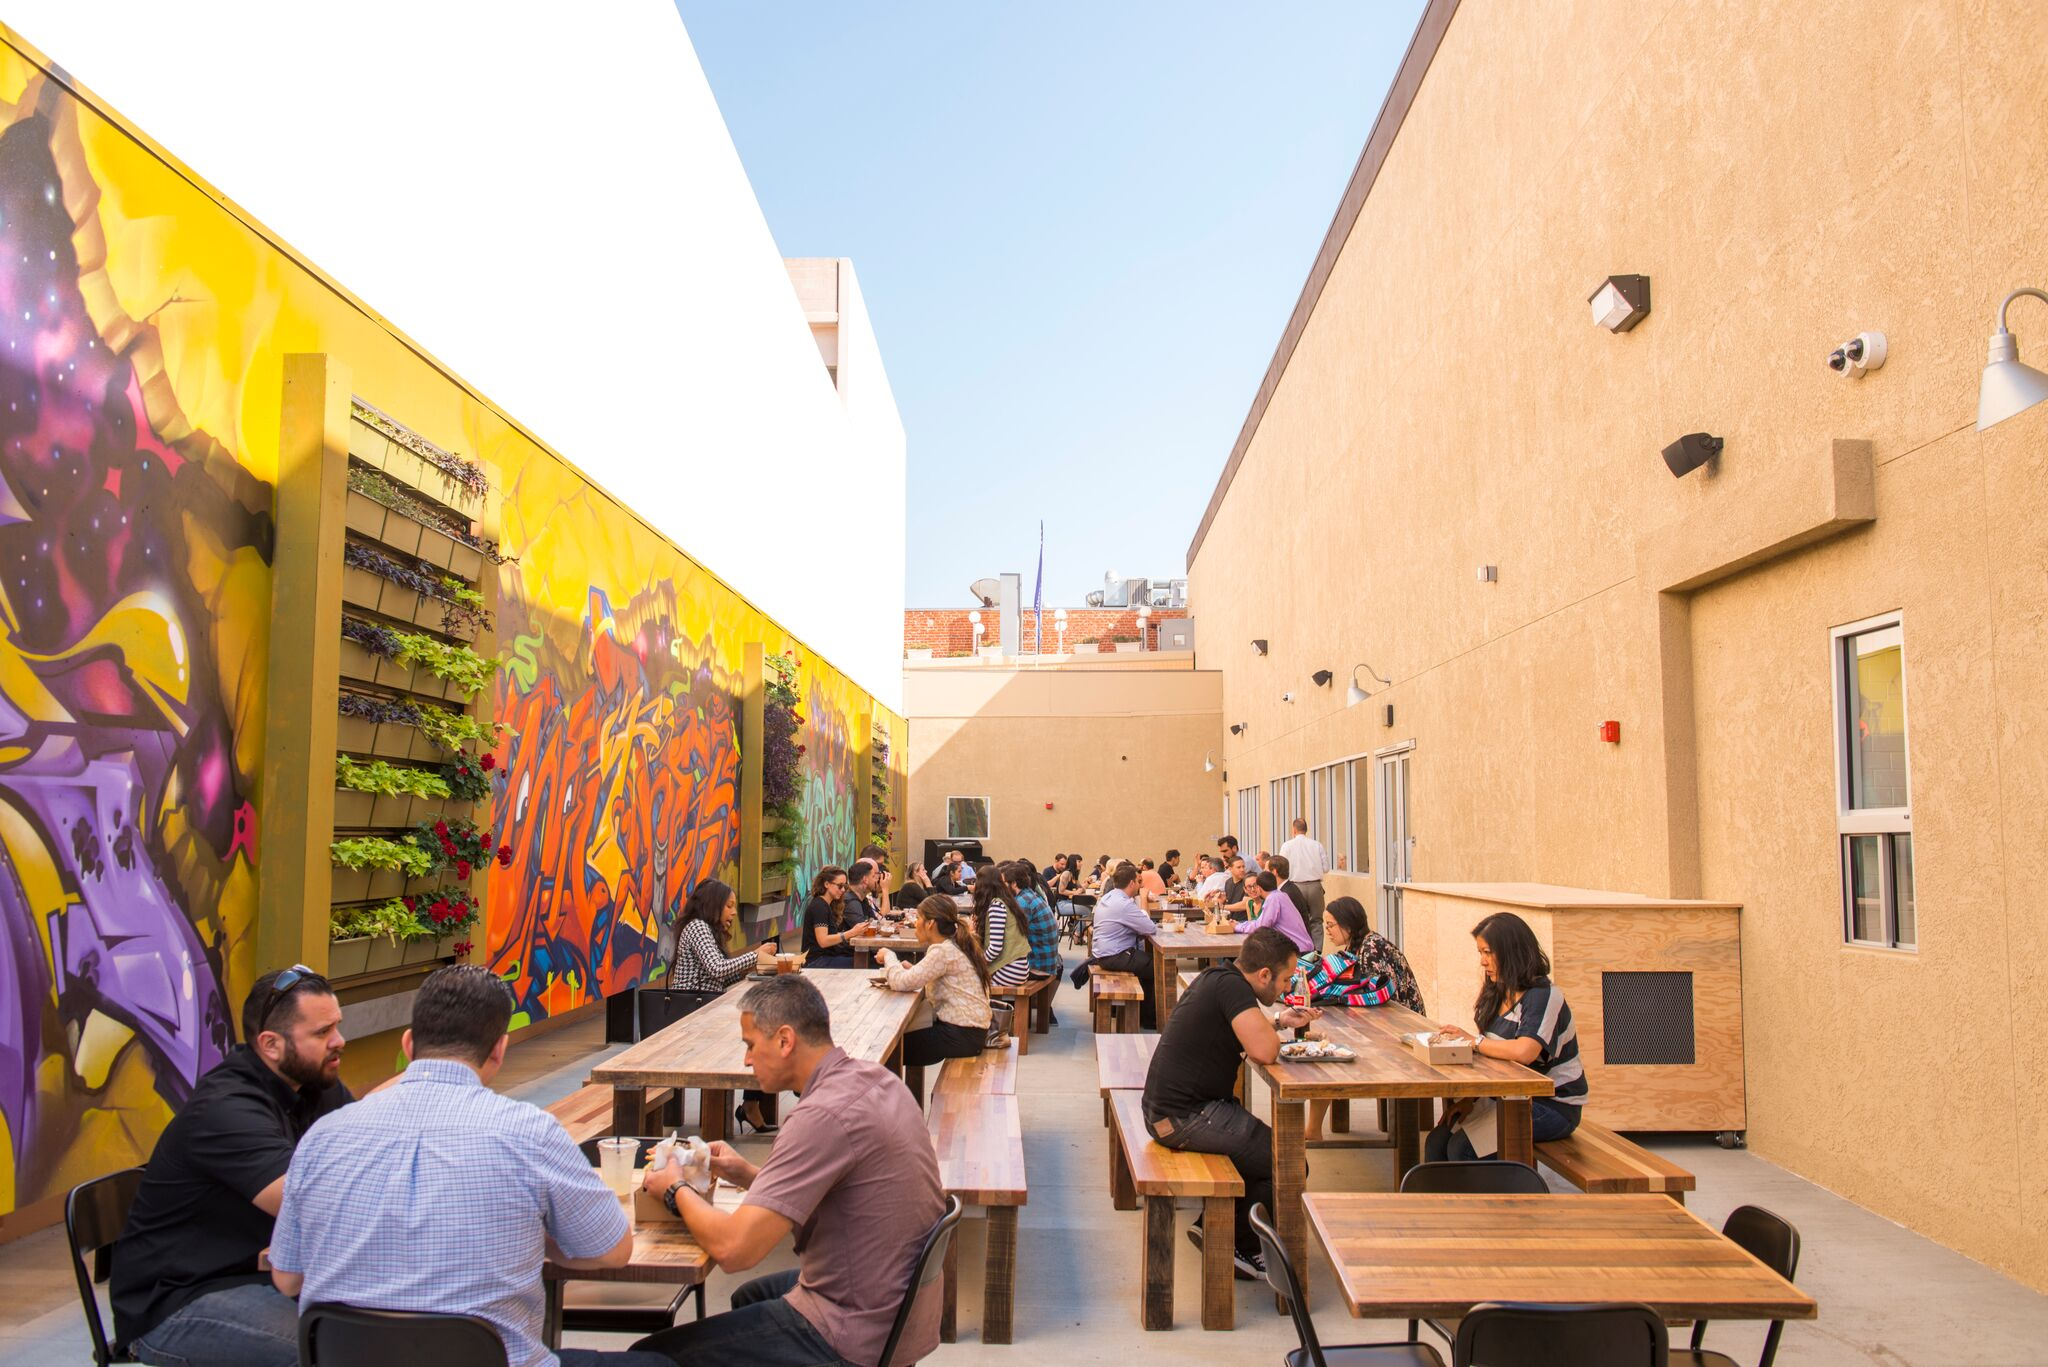 Enter the 4th Street Market patio off of Bush St. in DTSA and dine alongside your pup | photo courtesy of 100eats